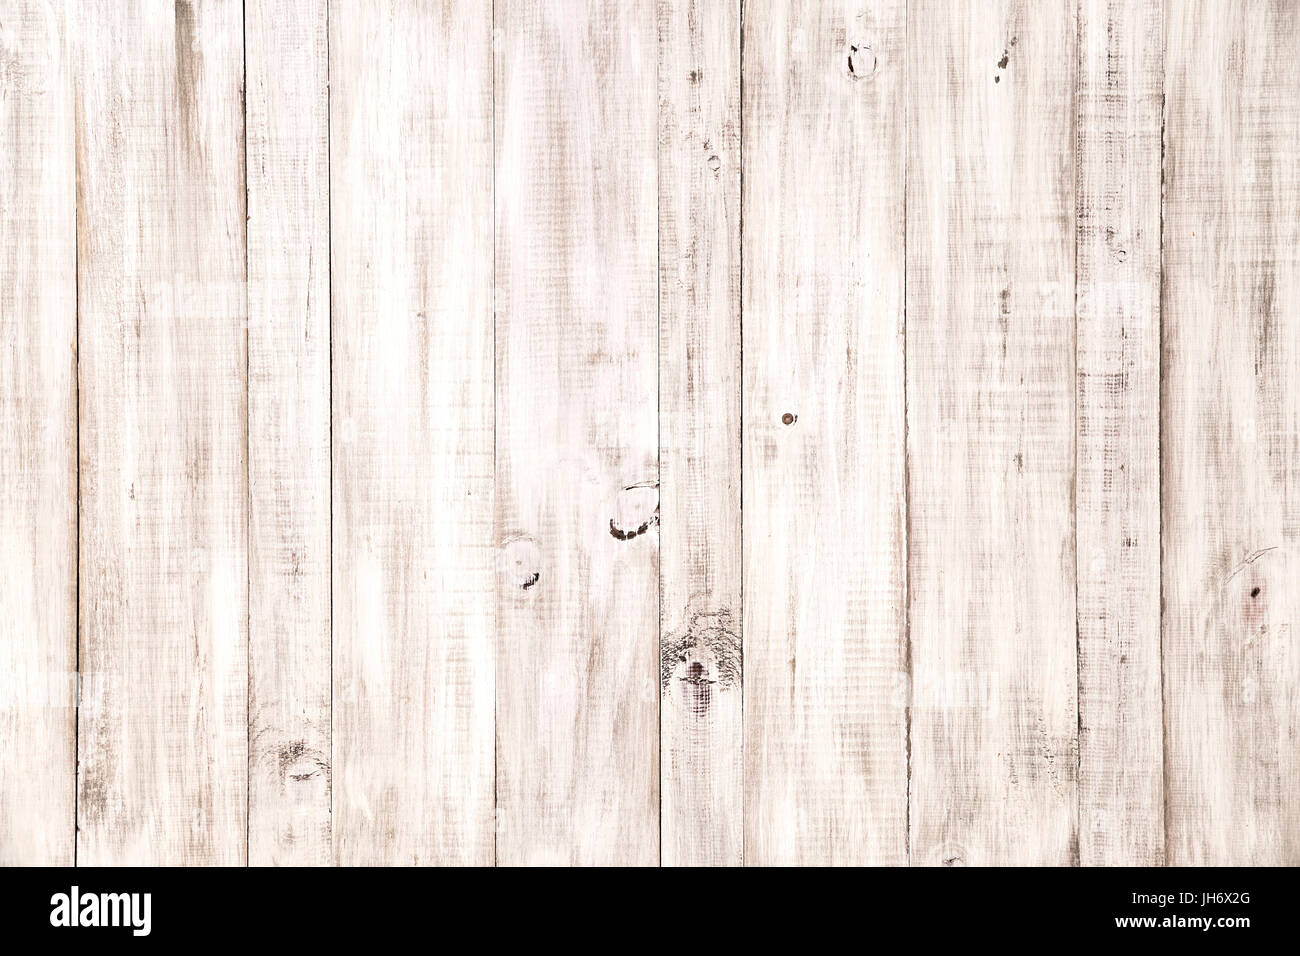 Vintage White Wood Planks Texture Background